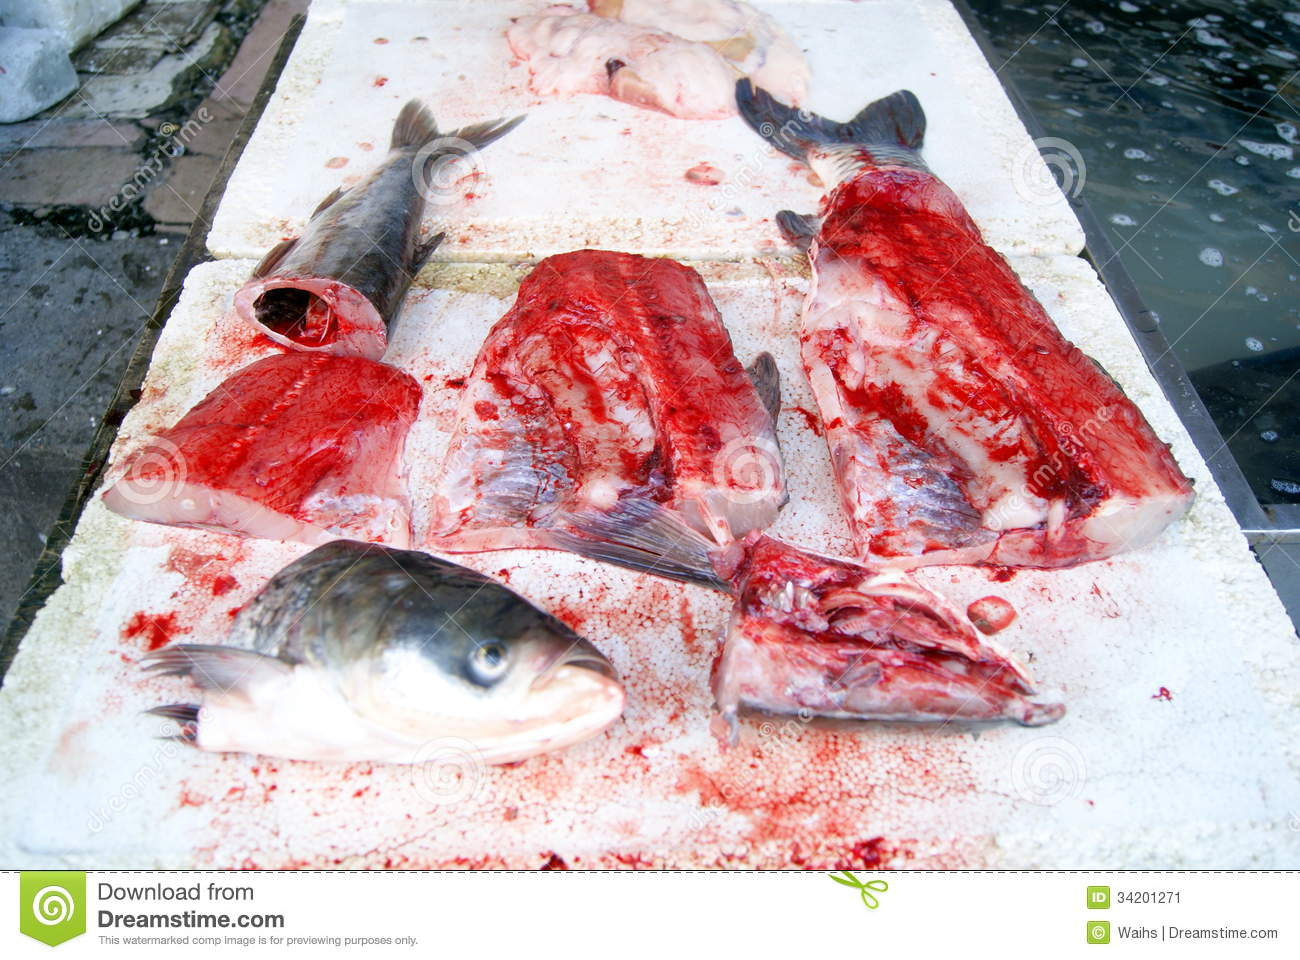 Fish heads and fish meat stock image image 34201271 for Is fish considered meat